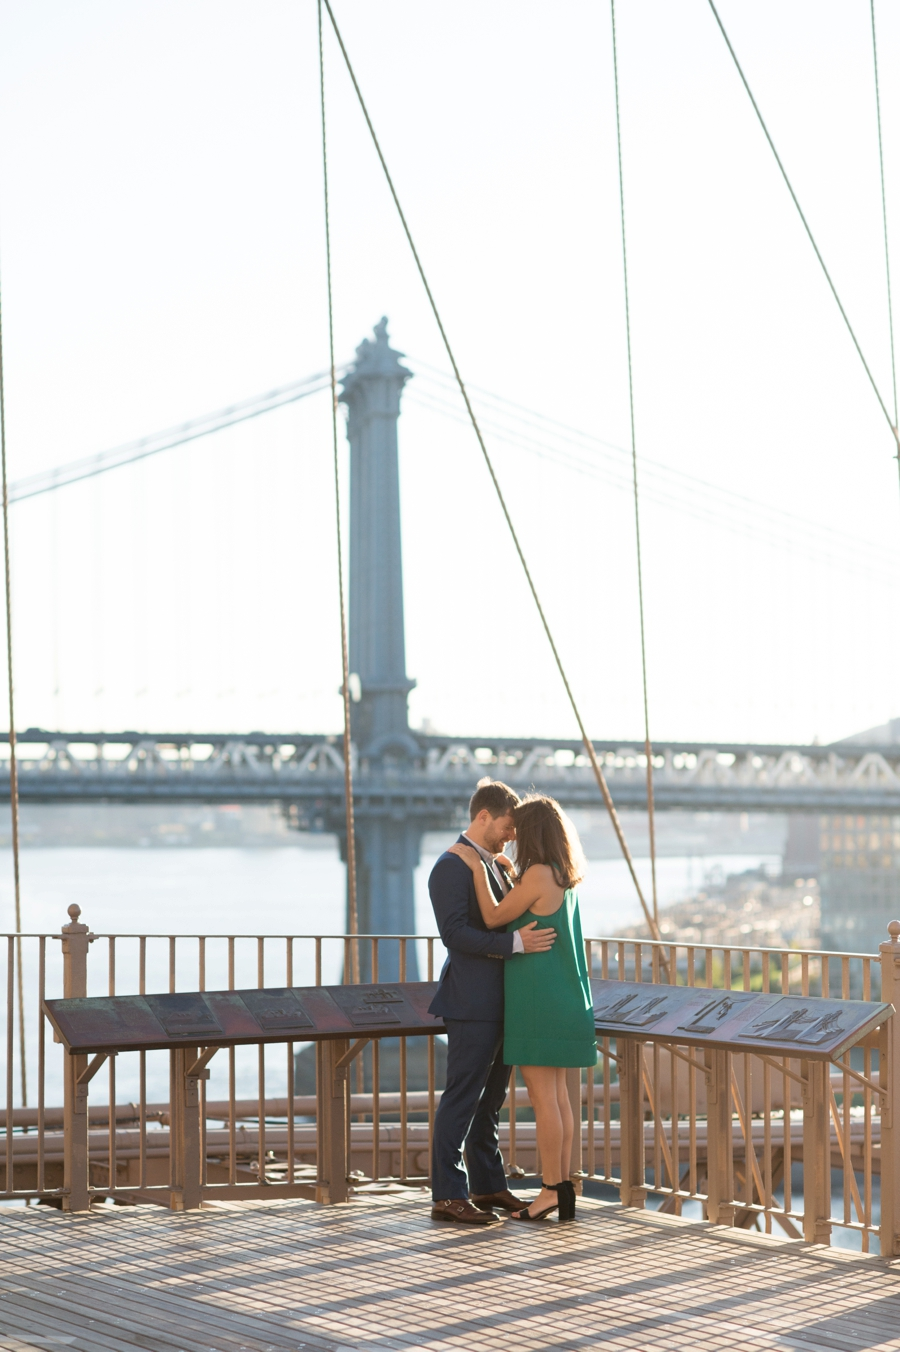 Brooklyn_Bridge_Engagement_NYC_Film_Photographer_JJ_007.jpg